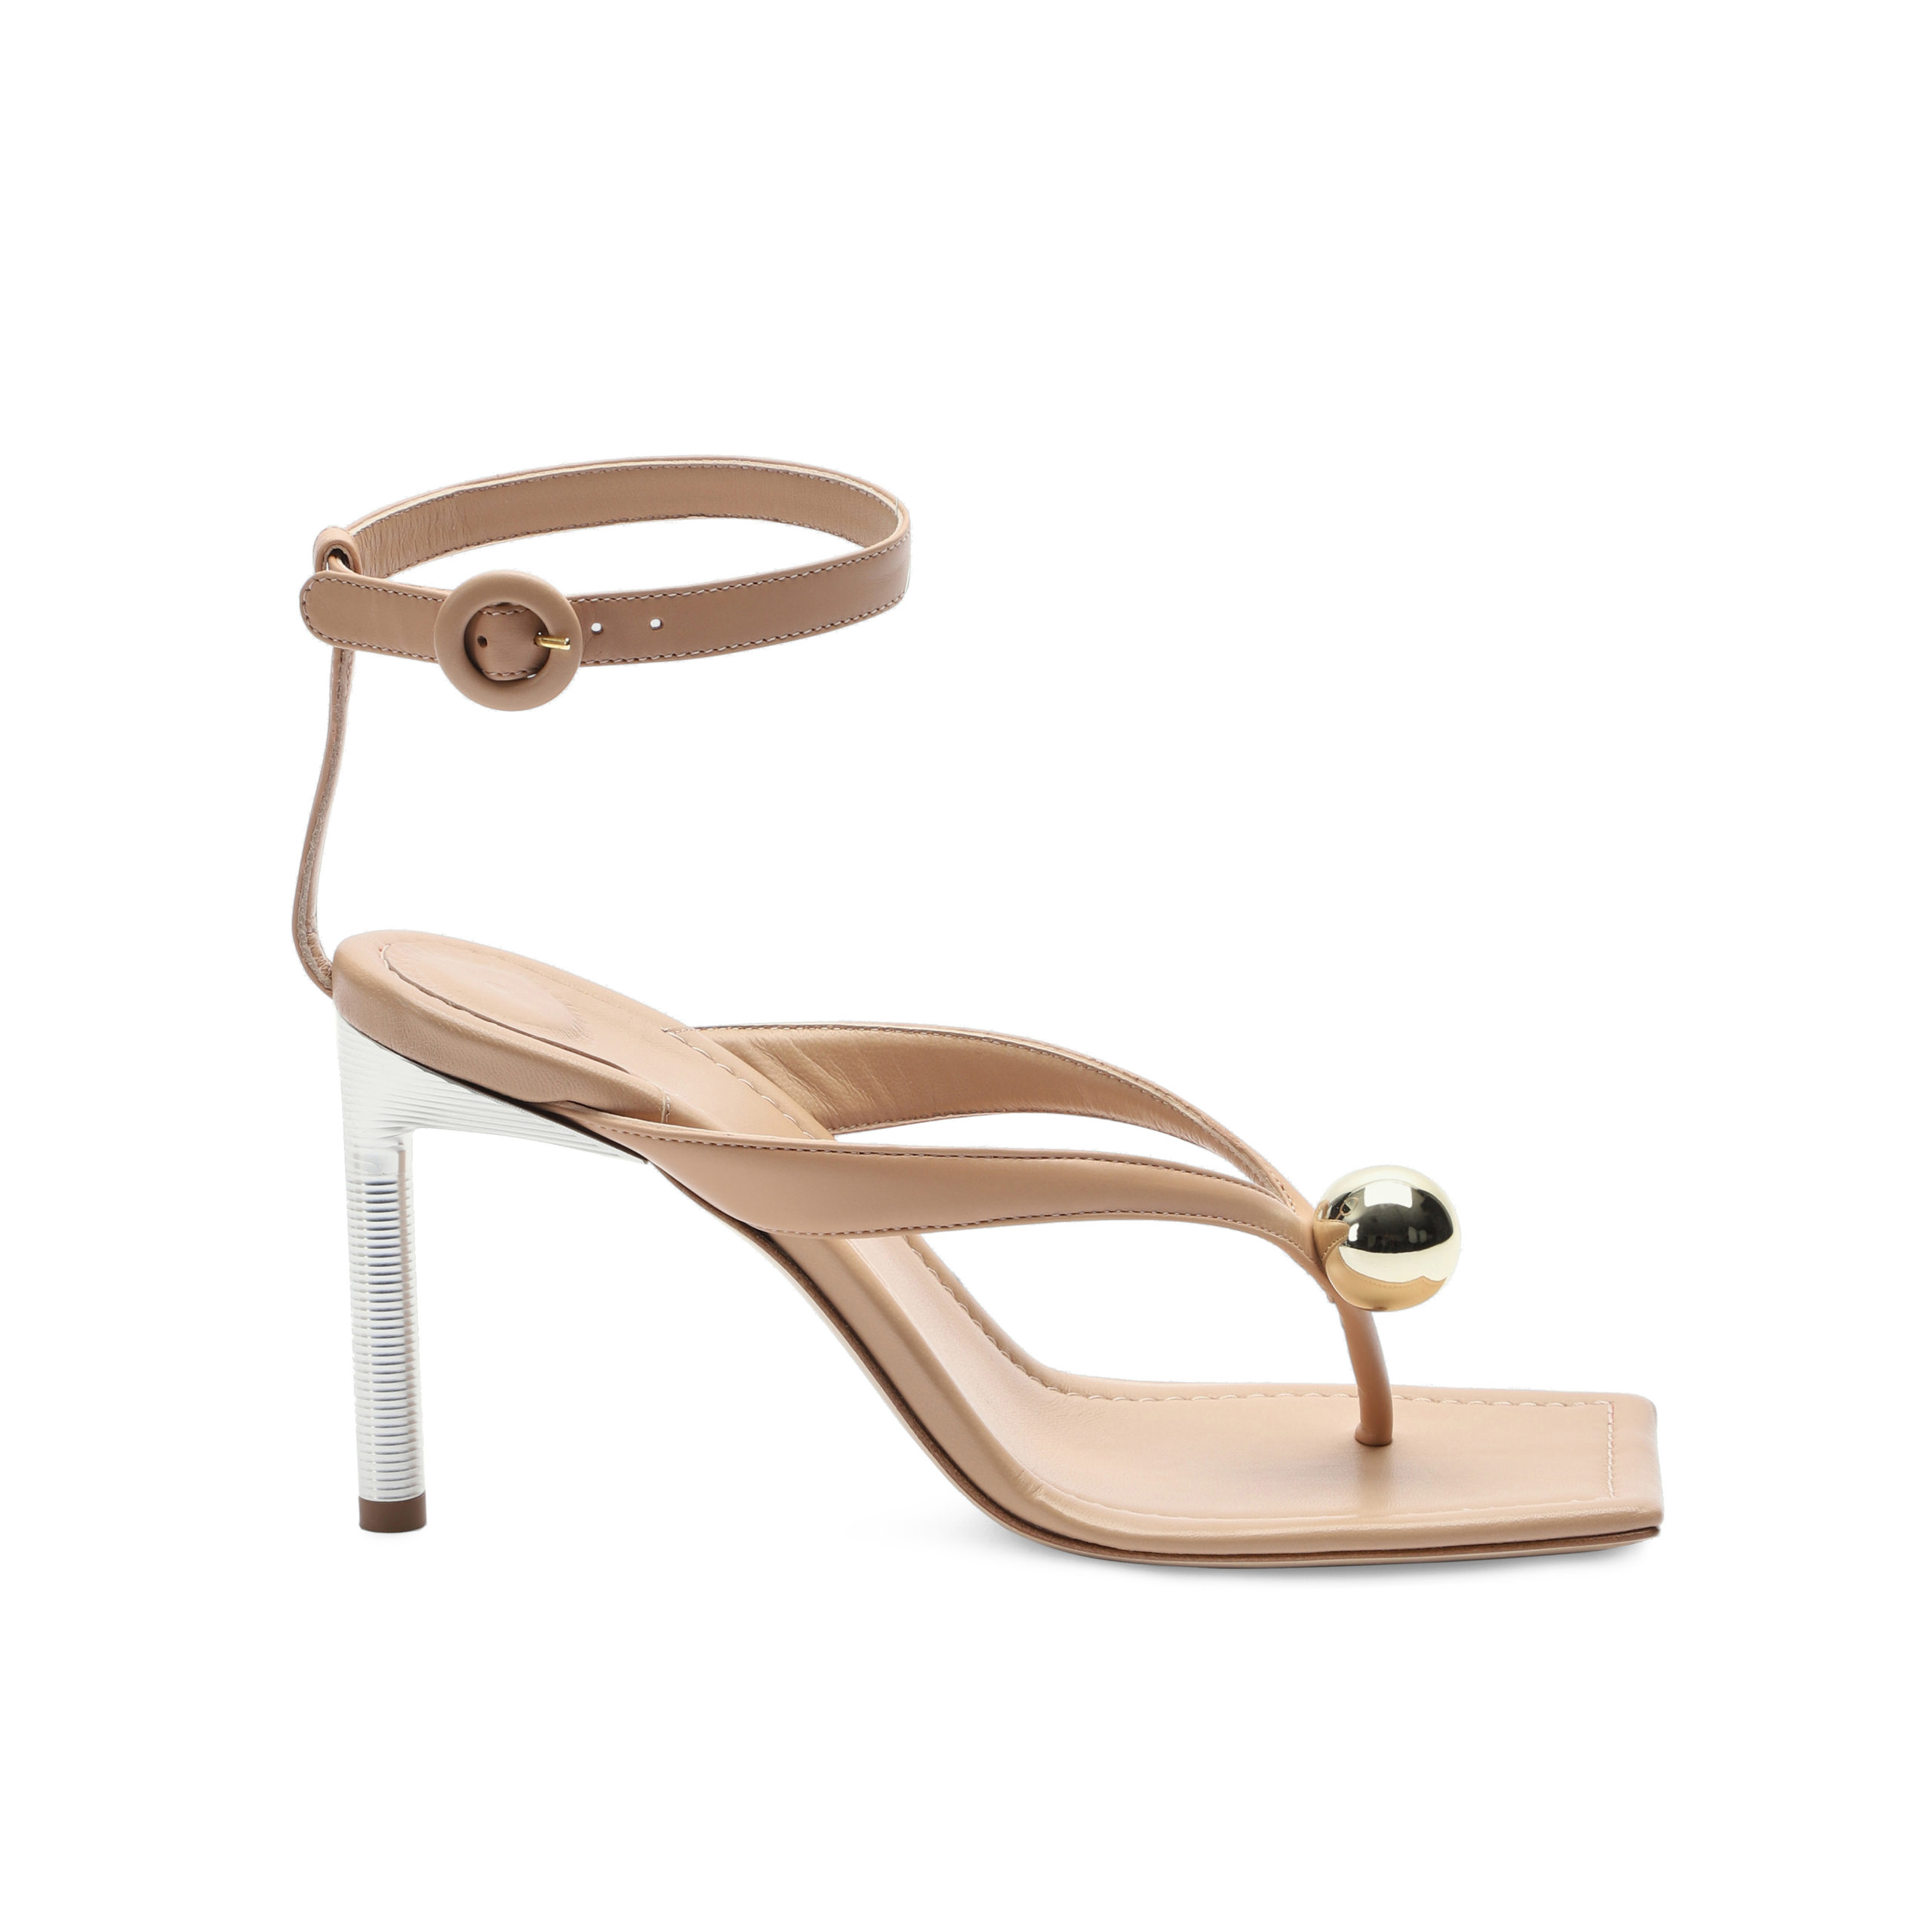 Sandales Timeless nude by Bettina Vermillon x Timeless Pearly